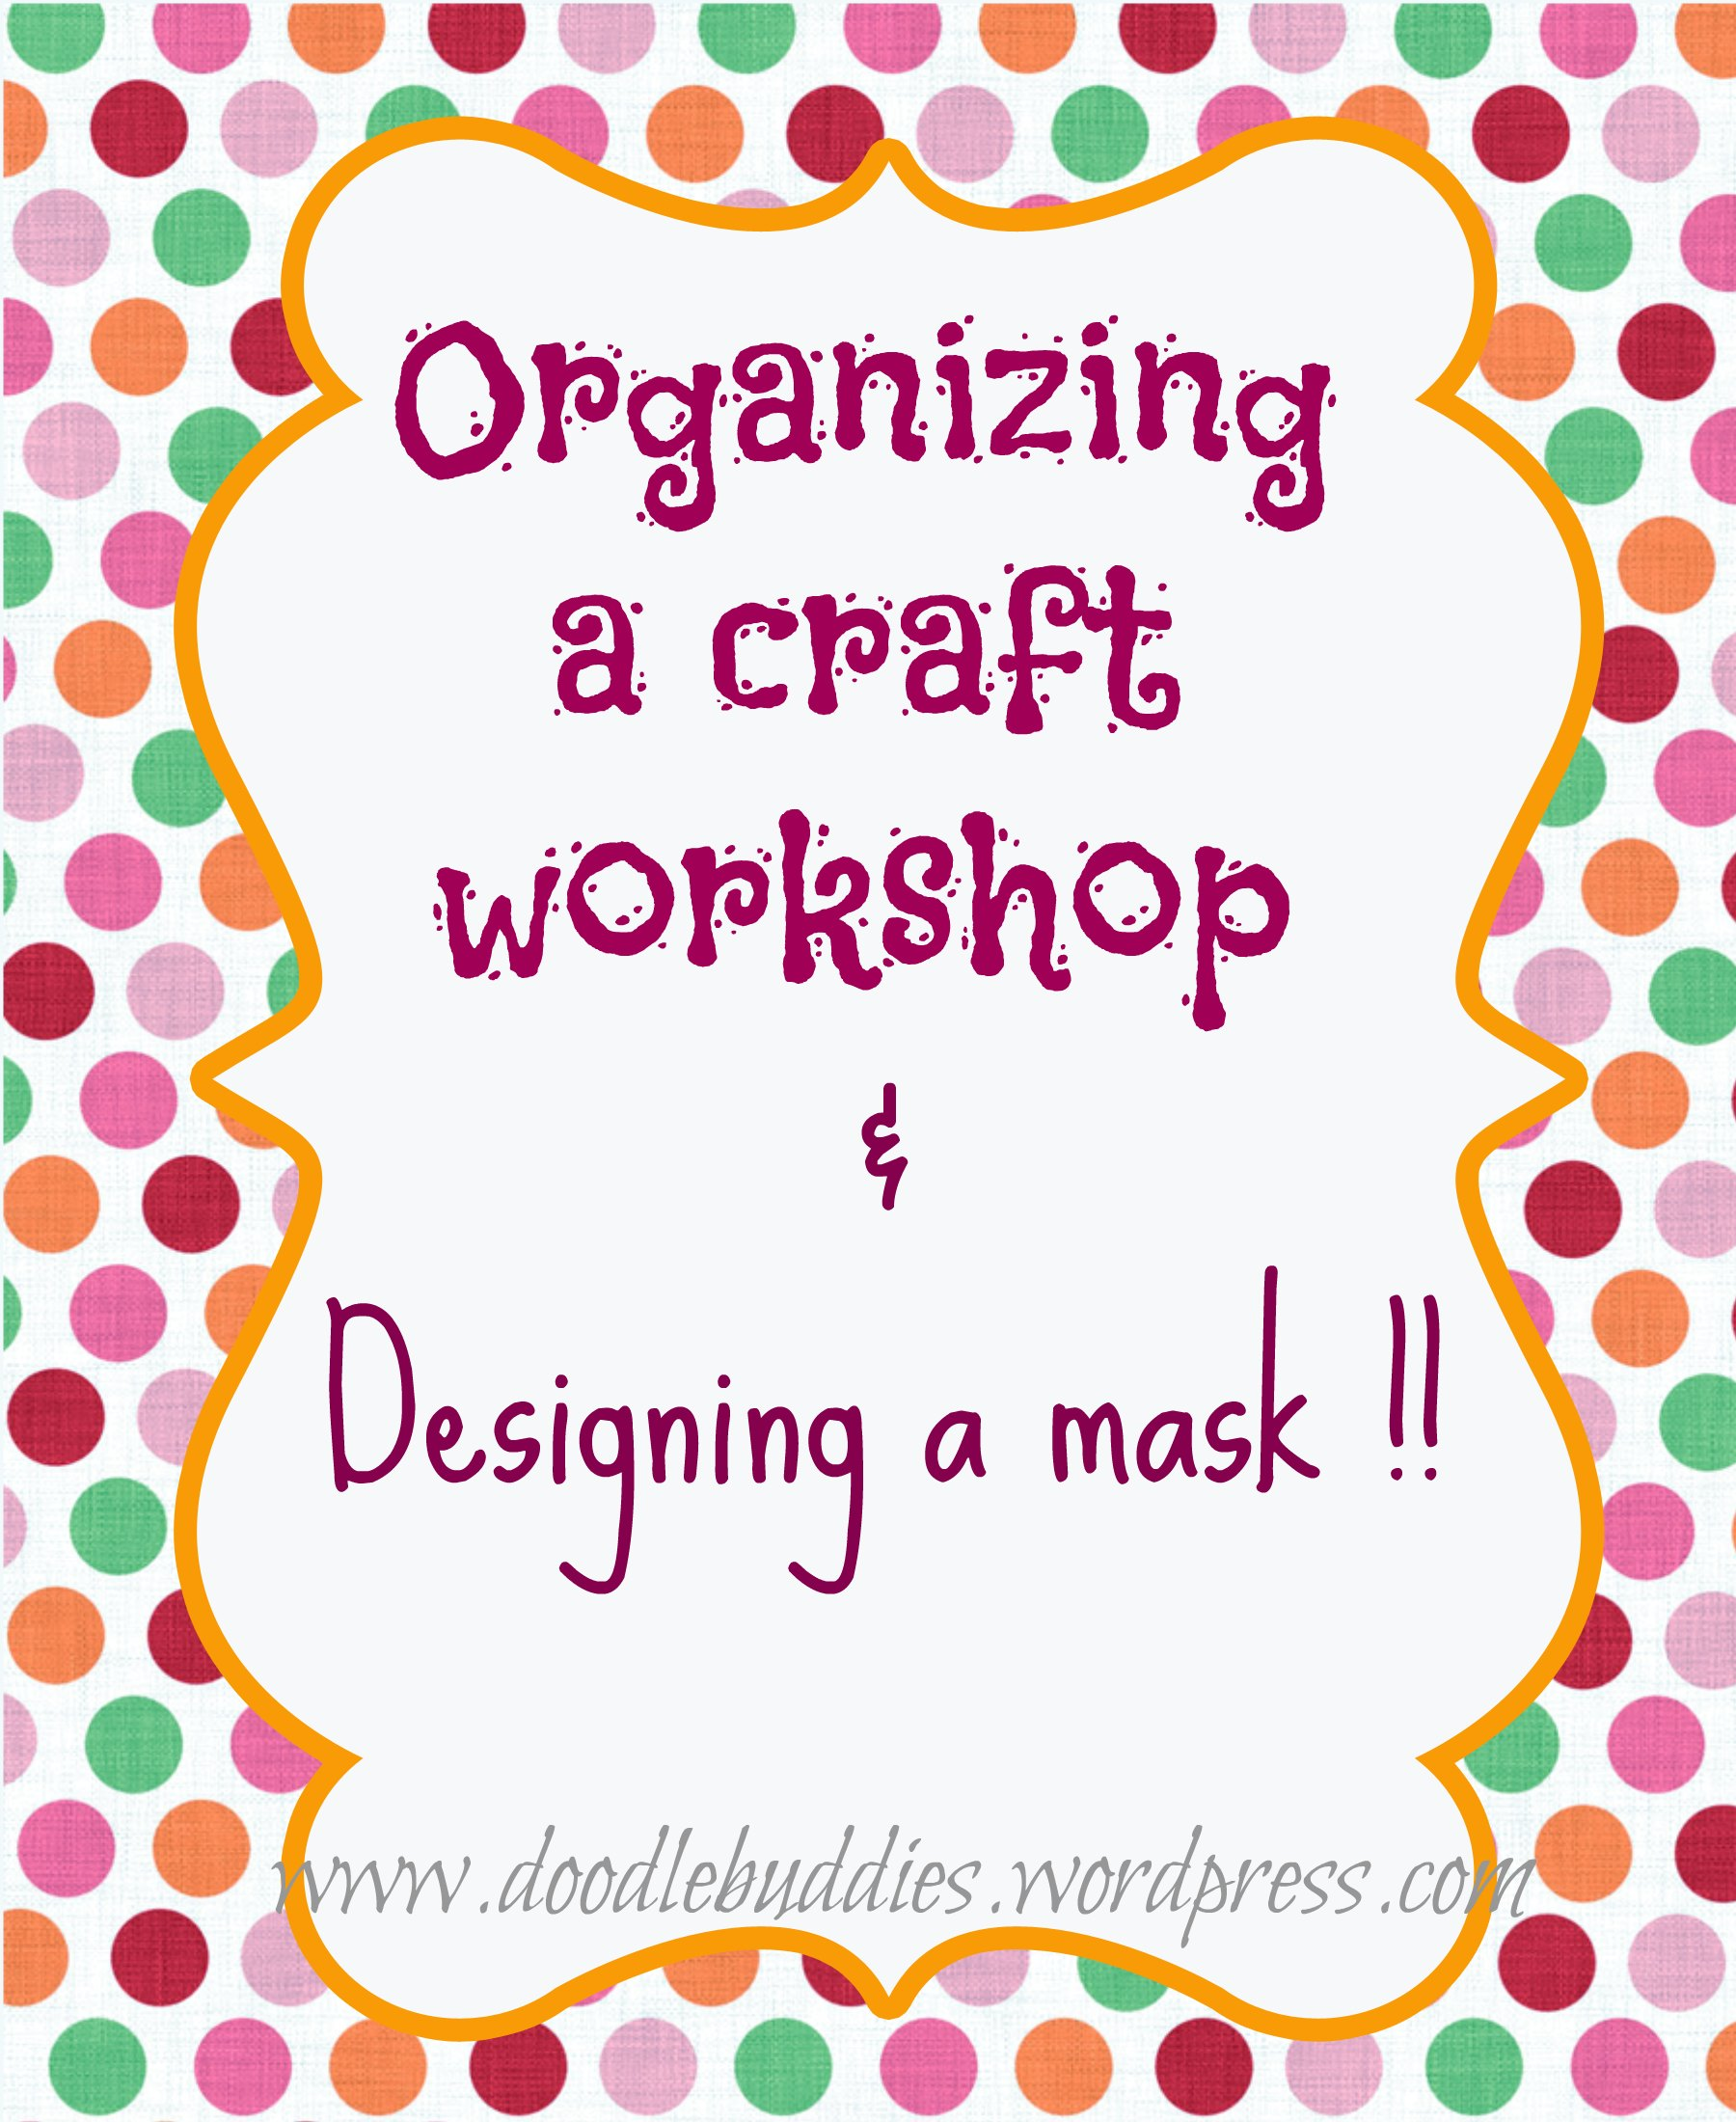 Organizing Craft workshop and designing masks.